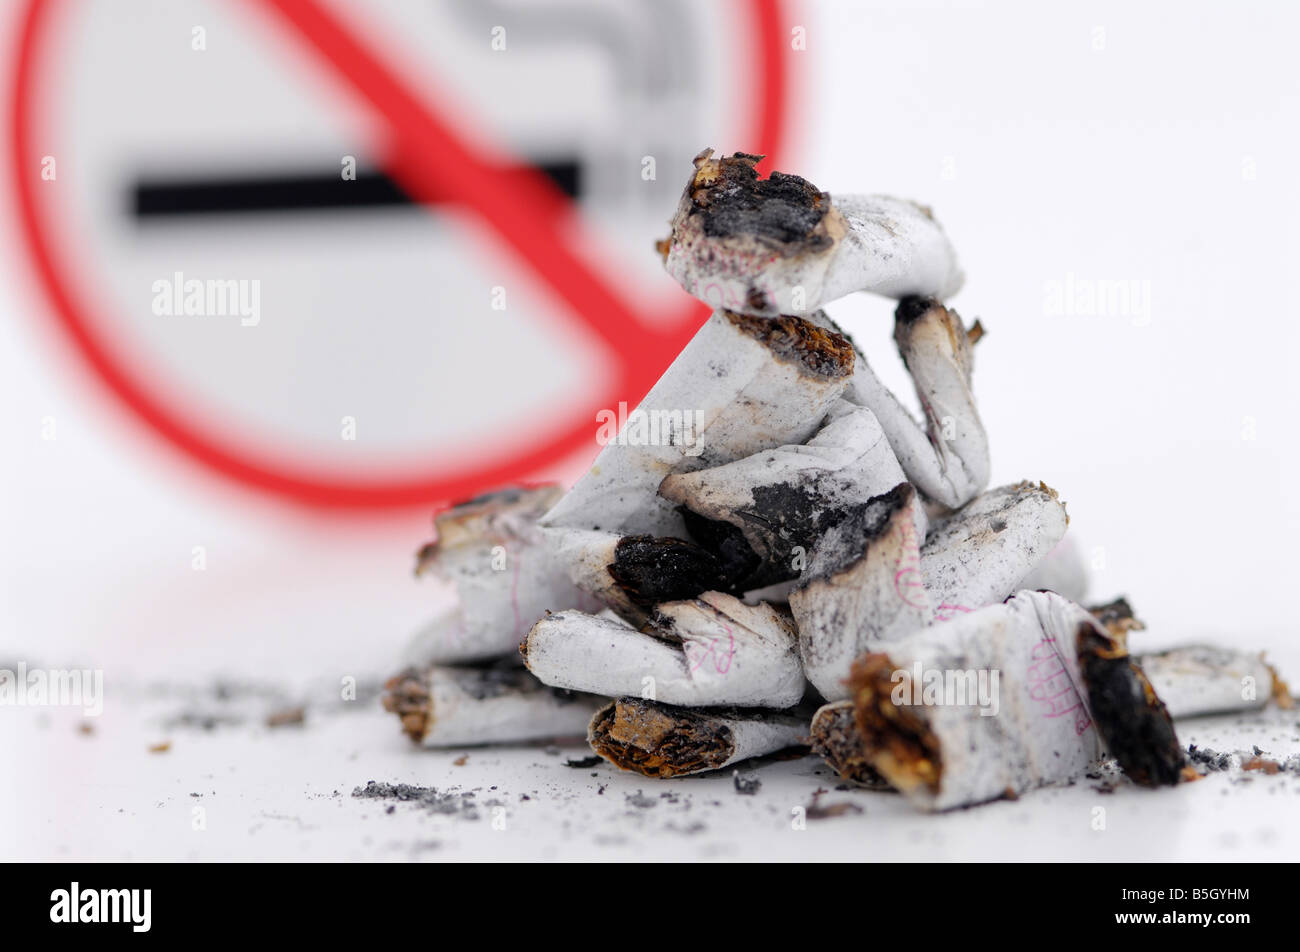 smoking prohibided, cirarettes and a sign for non-smoking - Stock Image